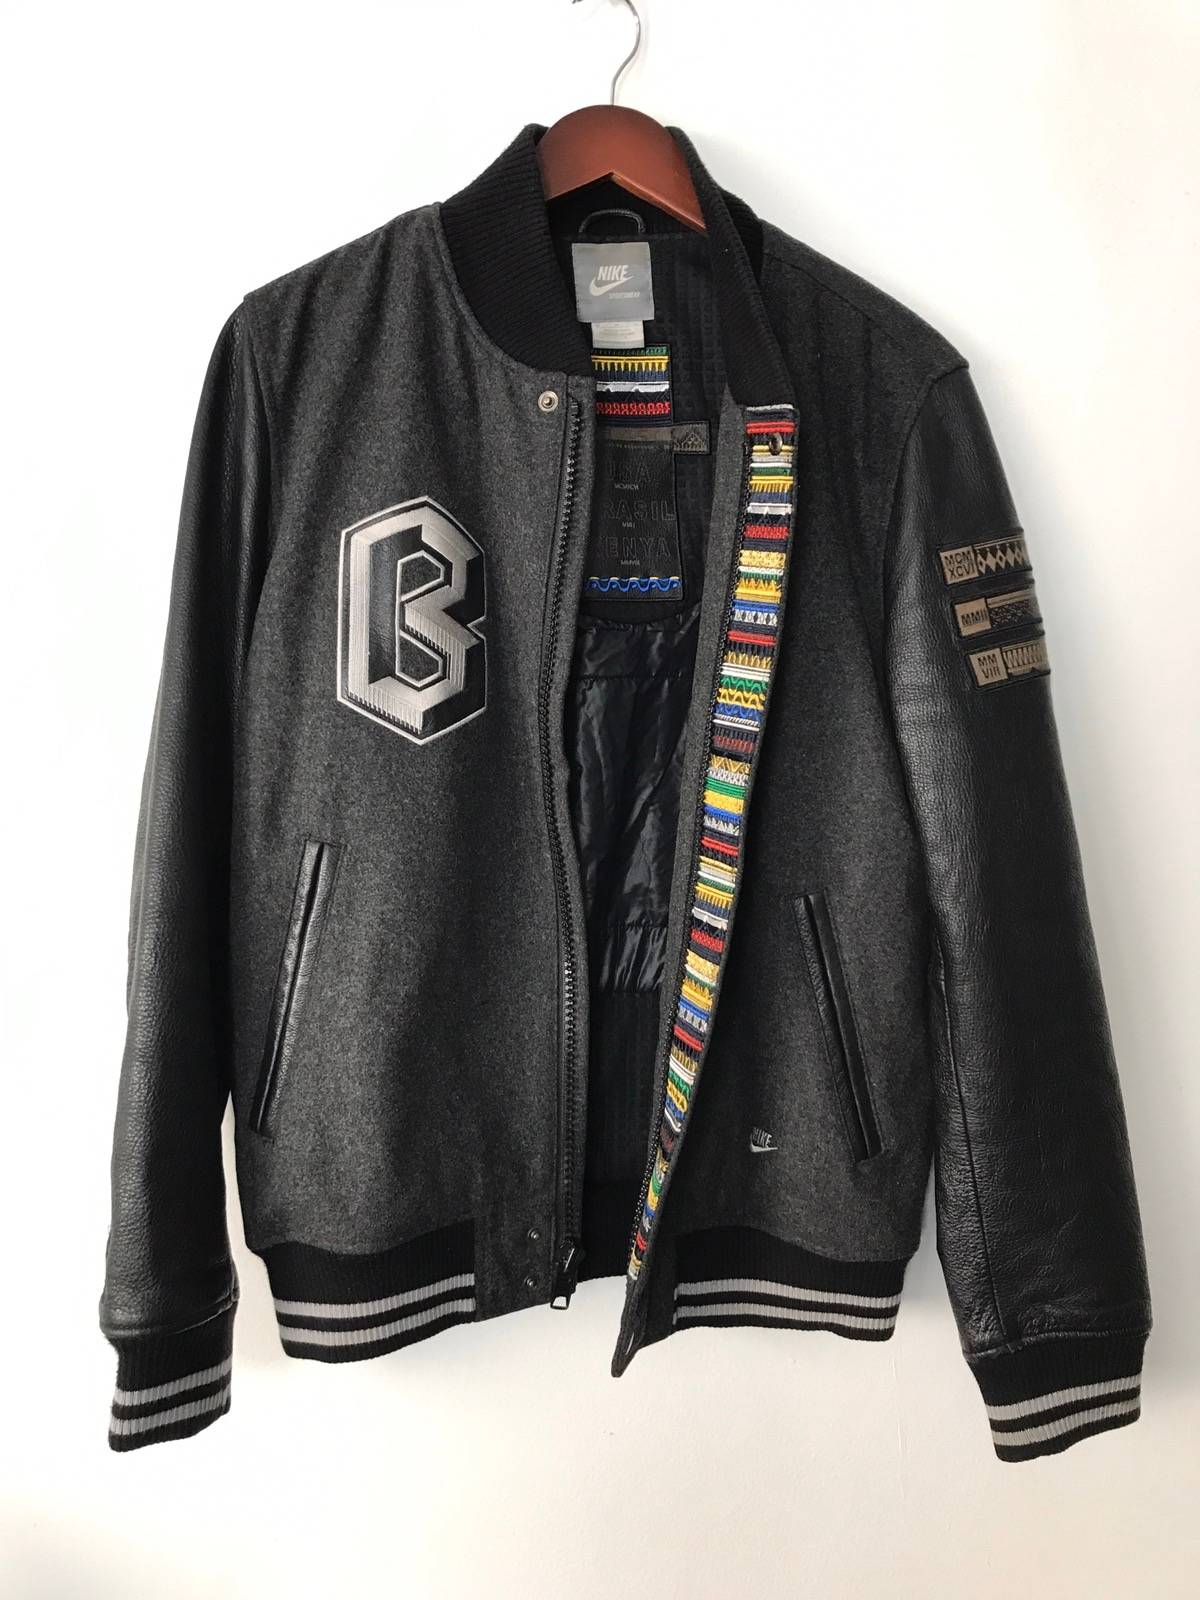 Nike Nike Destroyer Jacket Bhm 2012 Black History Month Size L $210